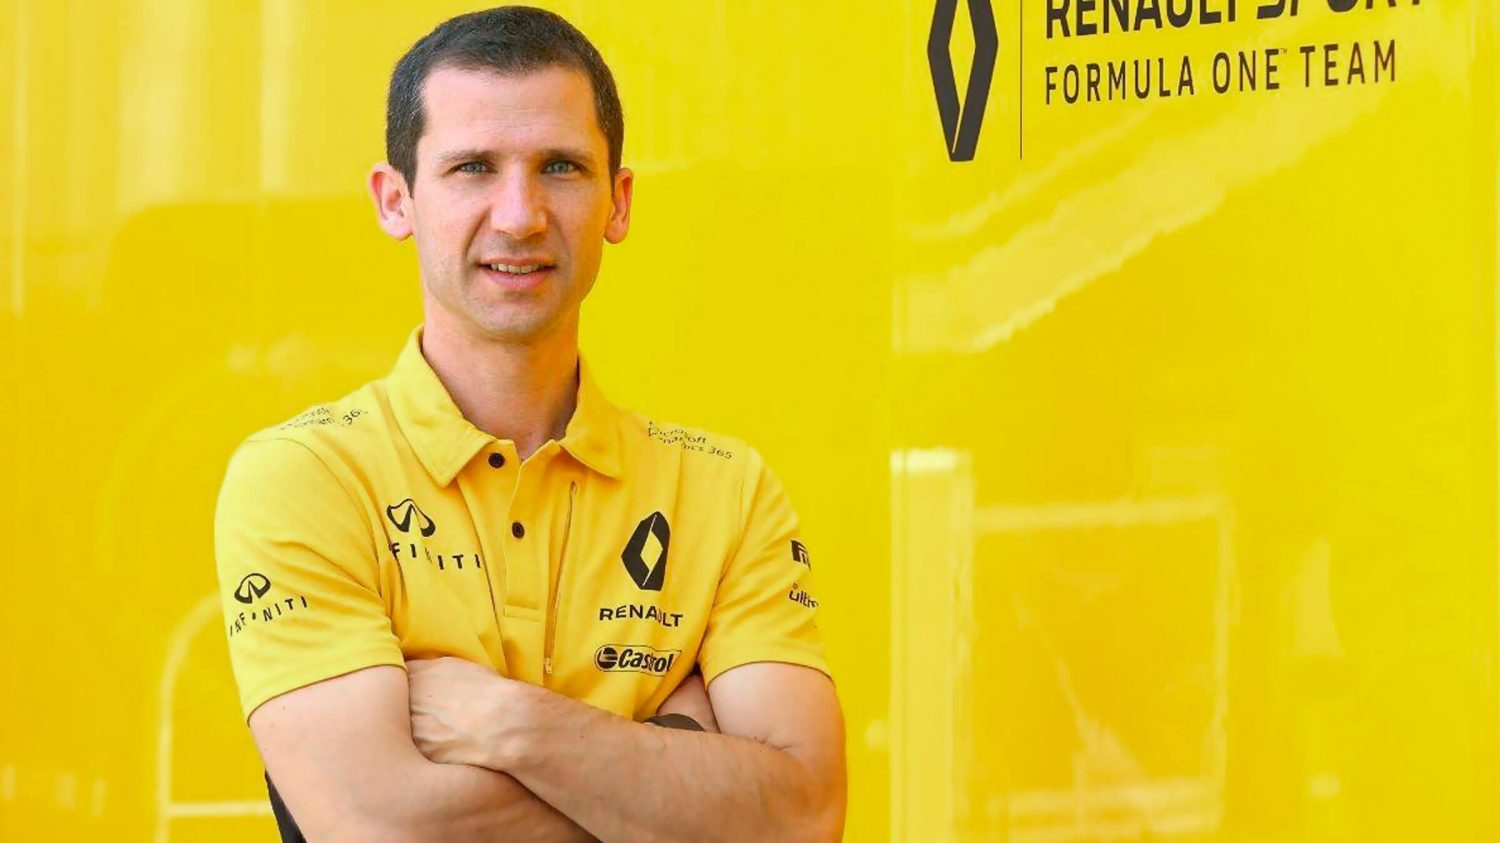 Remy Taffin, Team Engine Technical Director, Renault Formula One Sport Racing